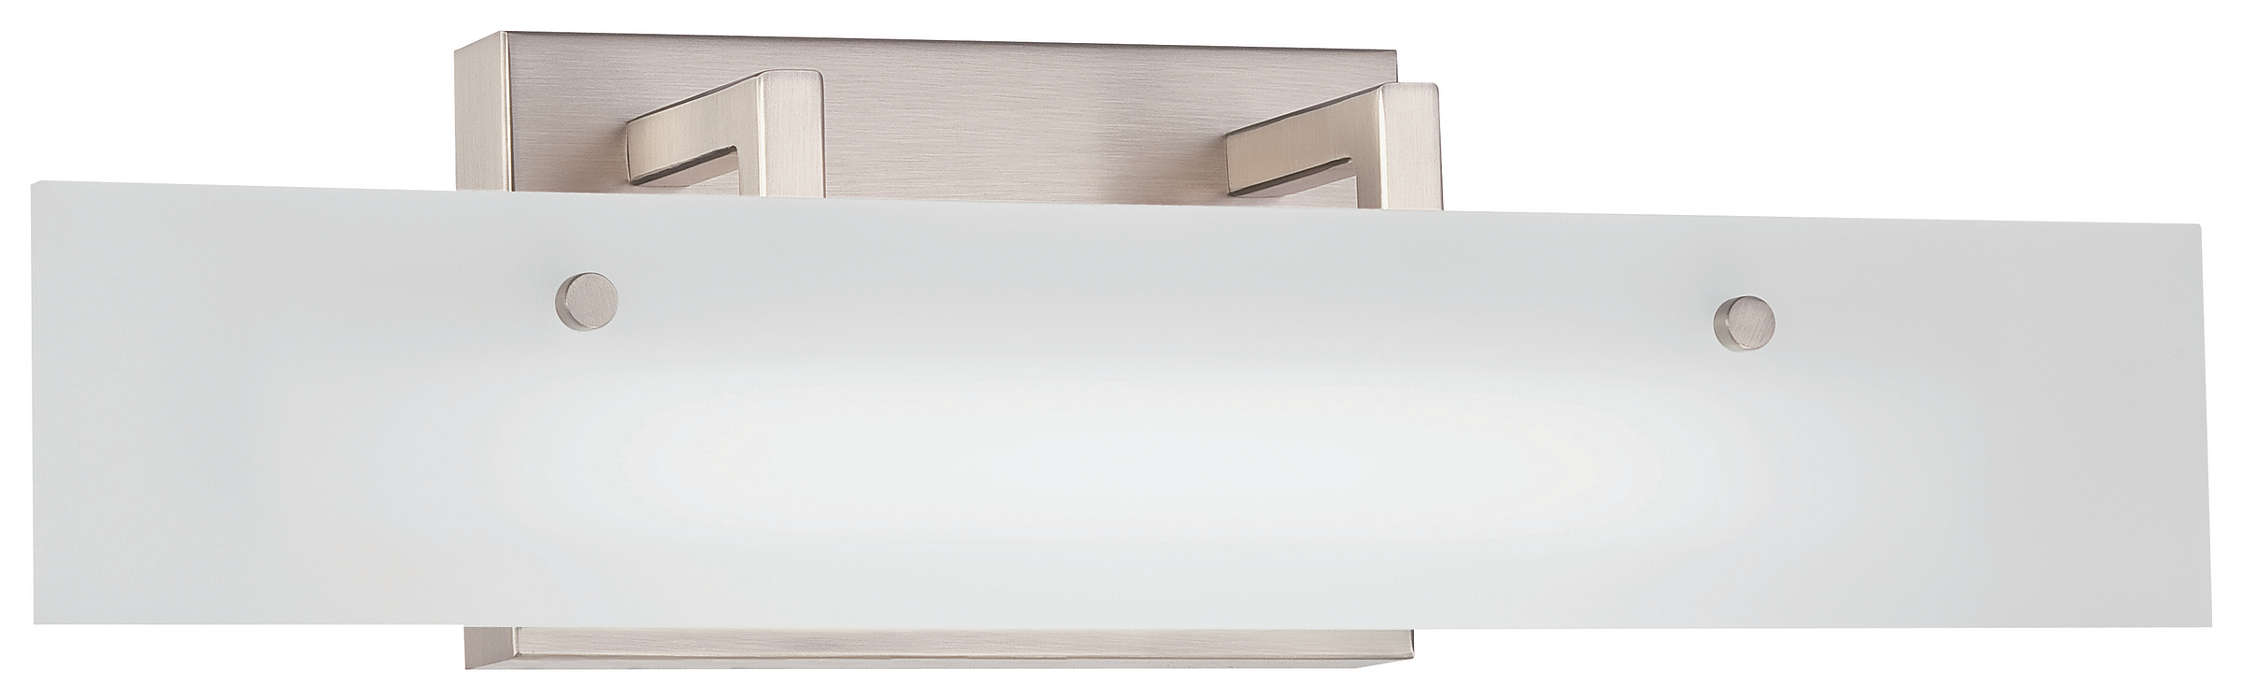 Axo 1-light Bath in Satin Nickel finish